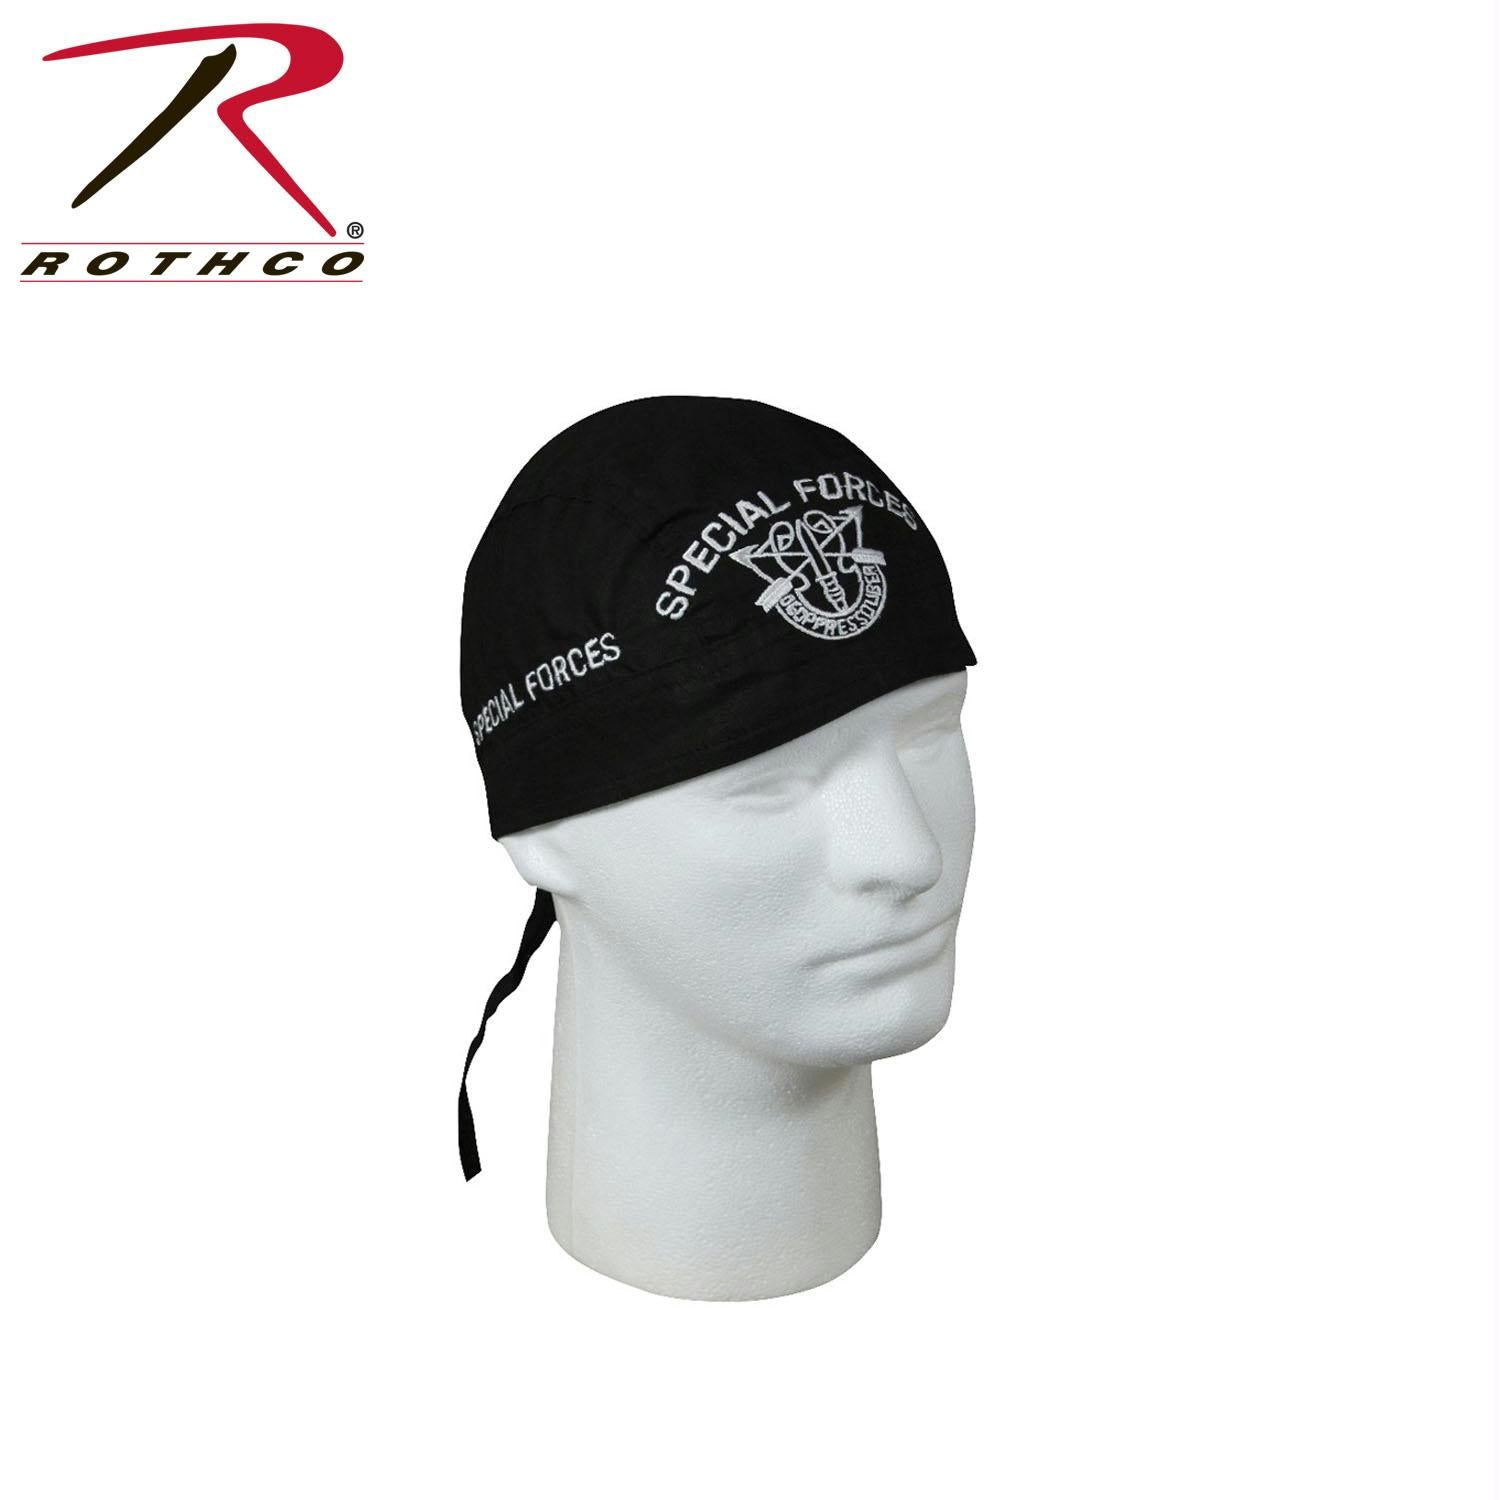 Rothco Special Forces Headwrap